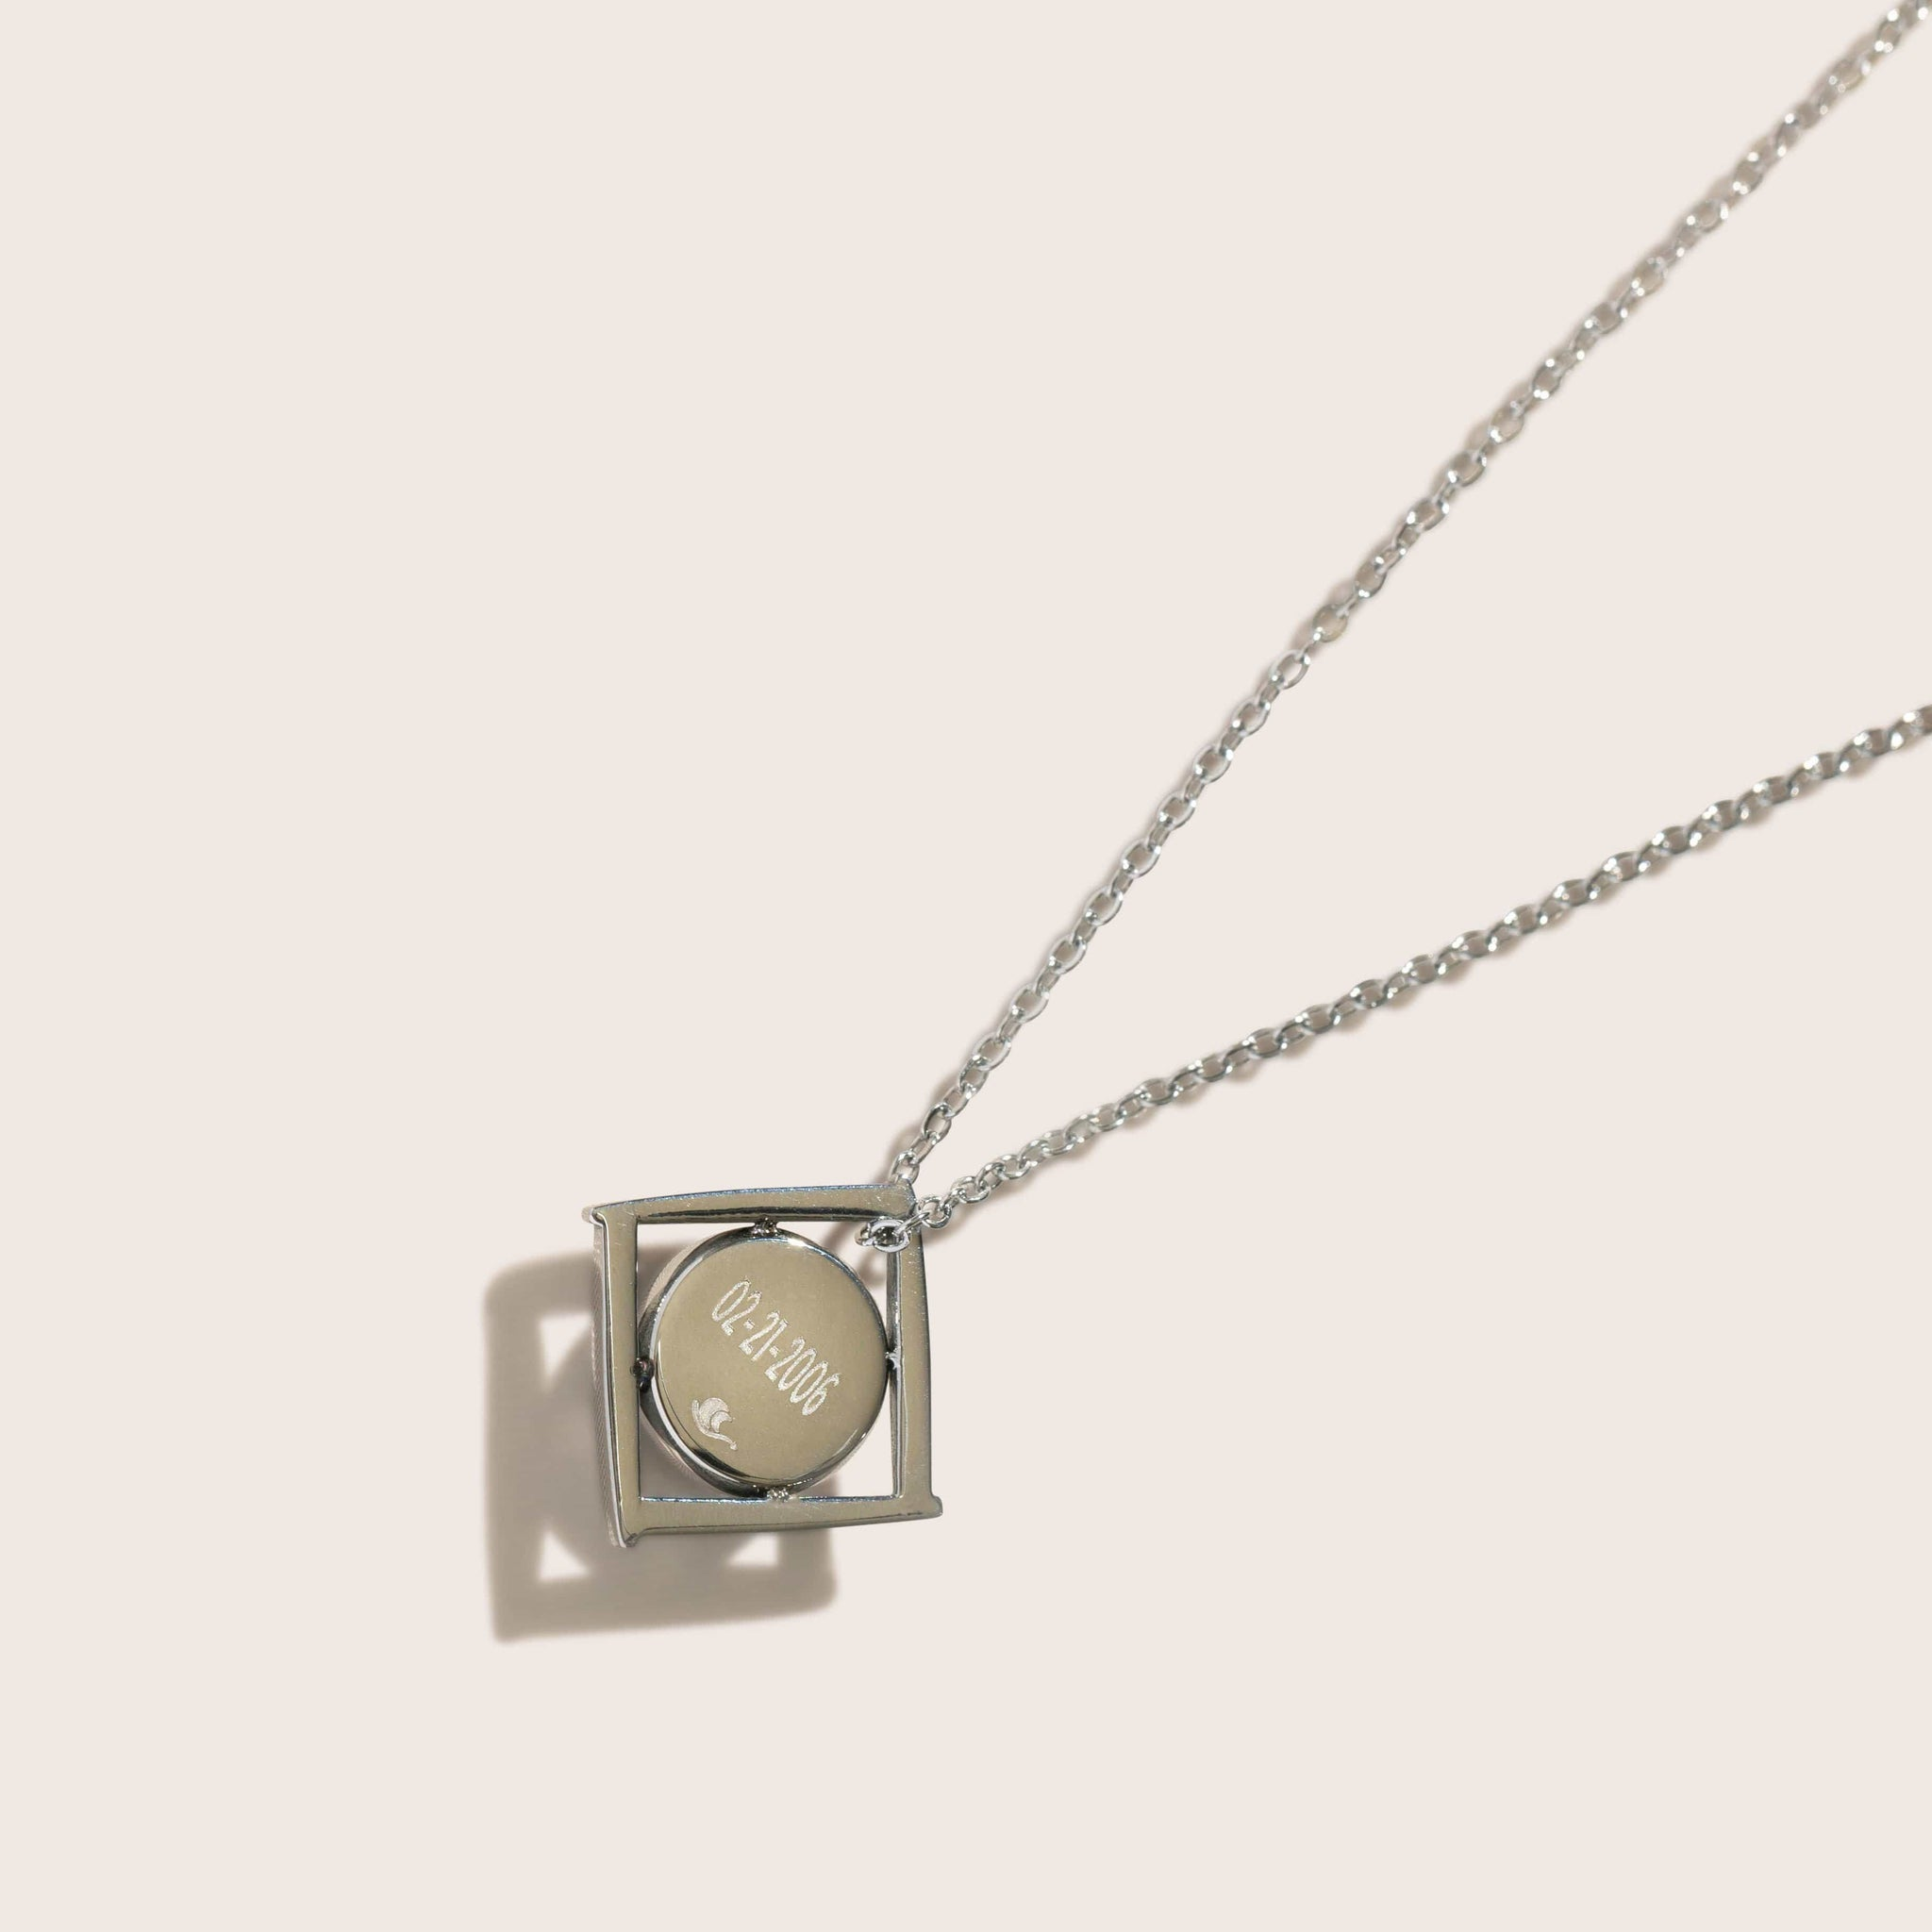 The Lunula Tetrad Necklace in Stainless Steel